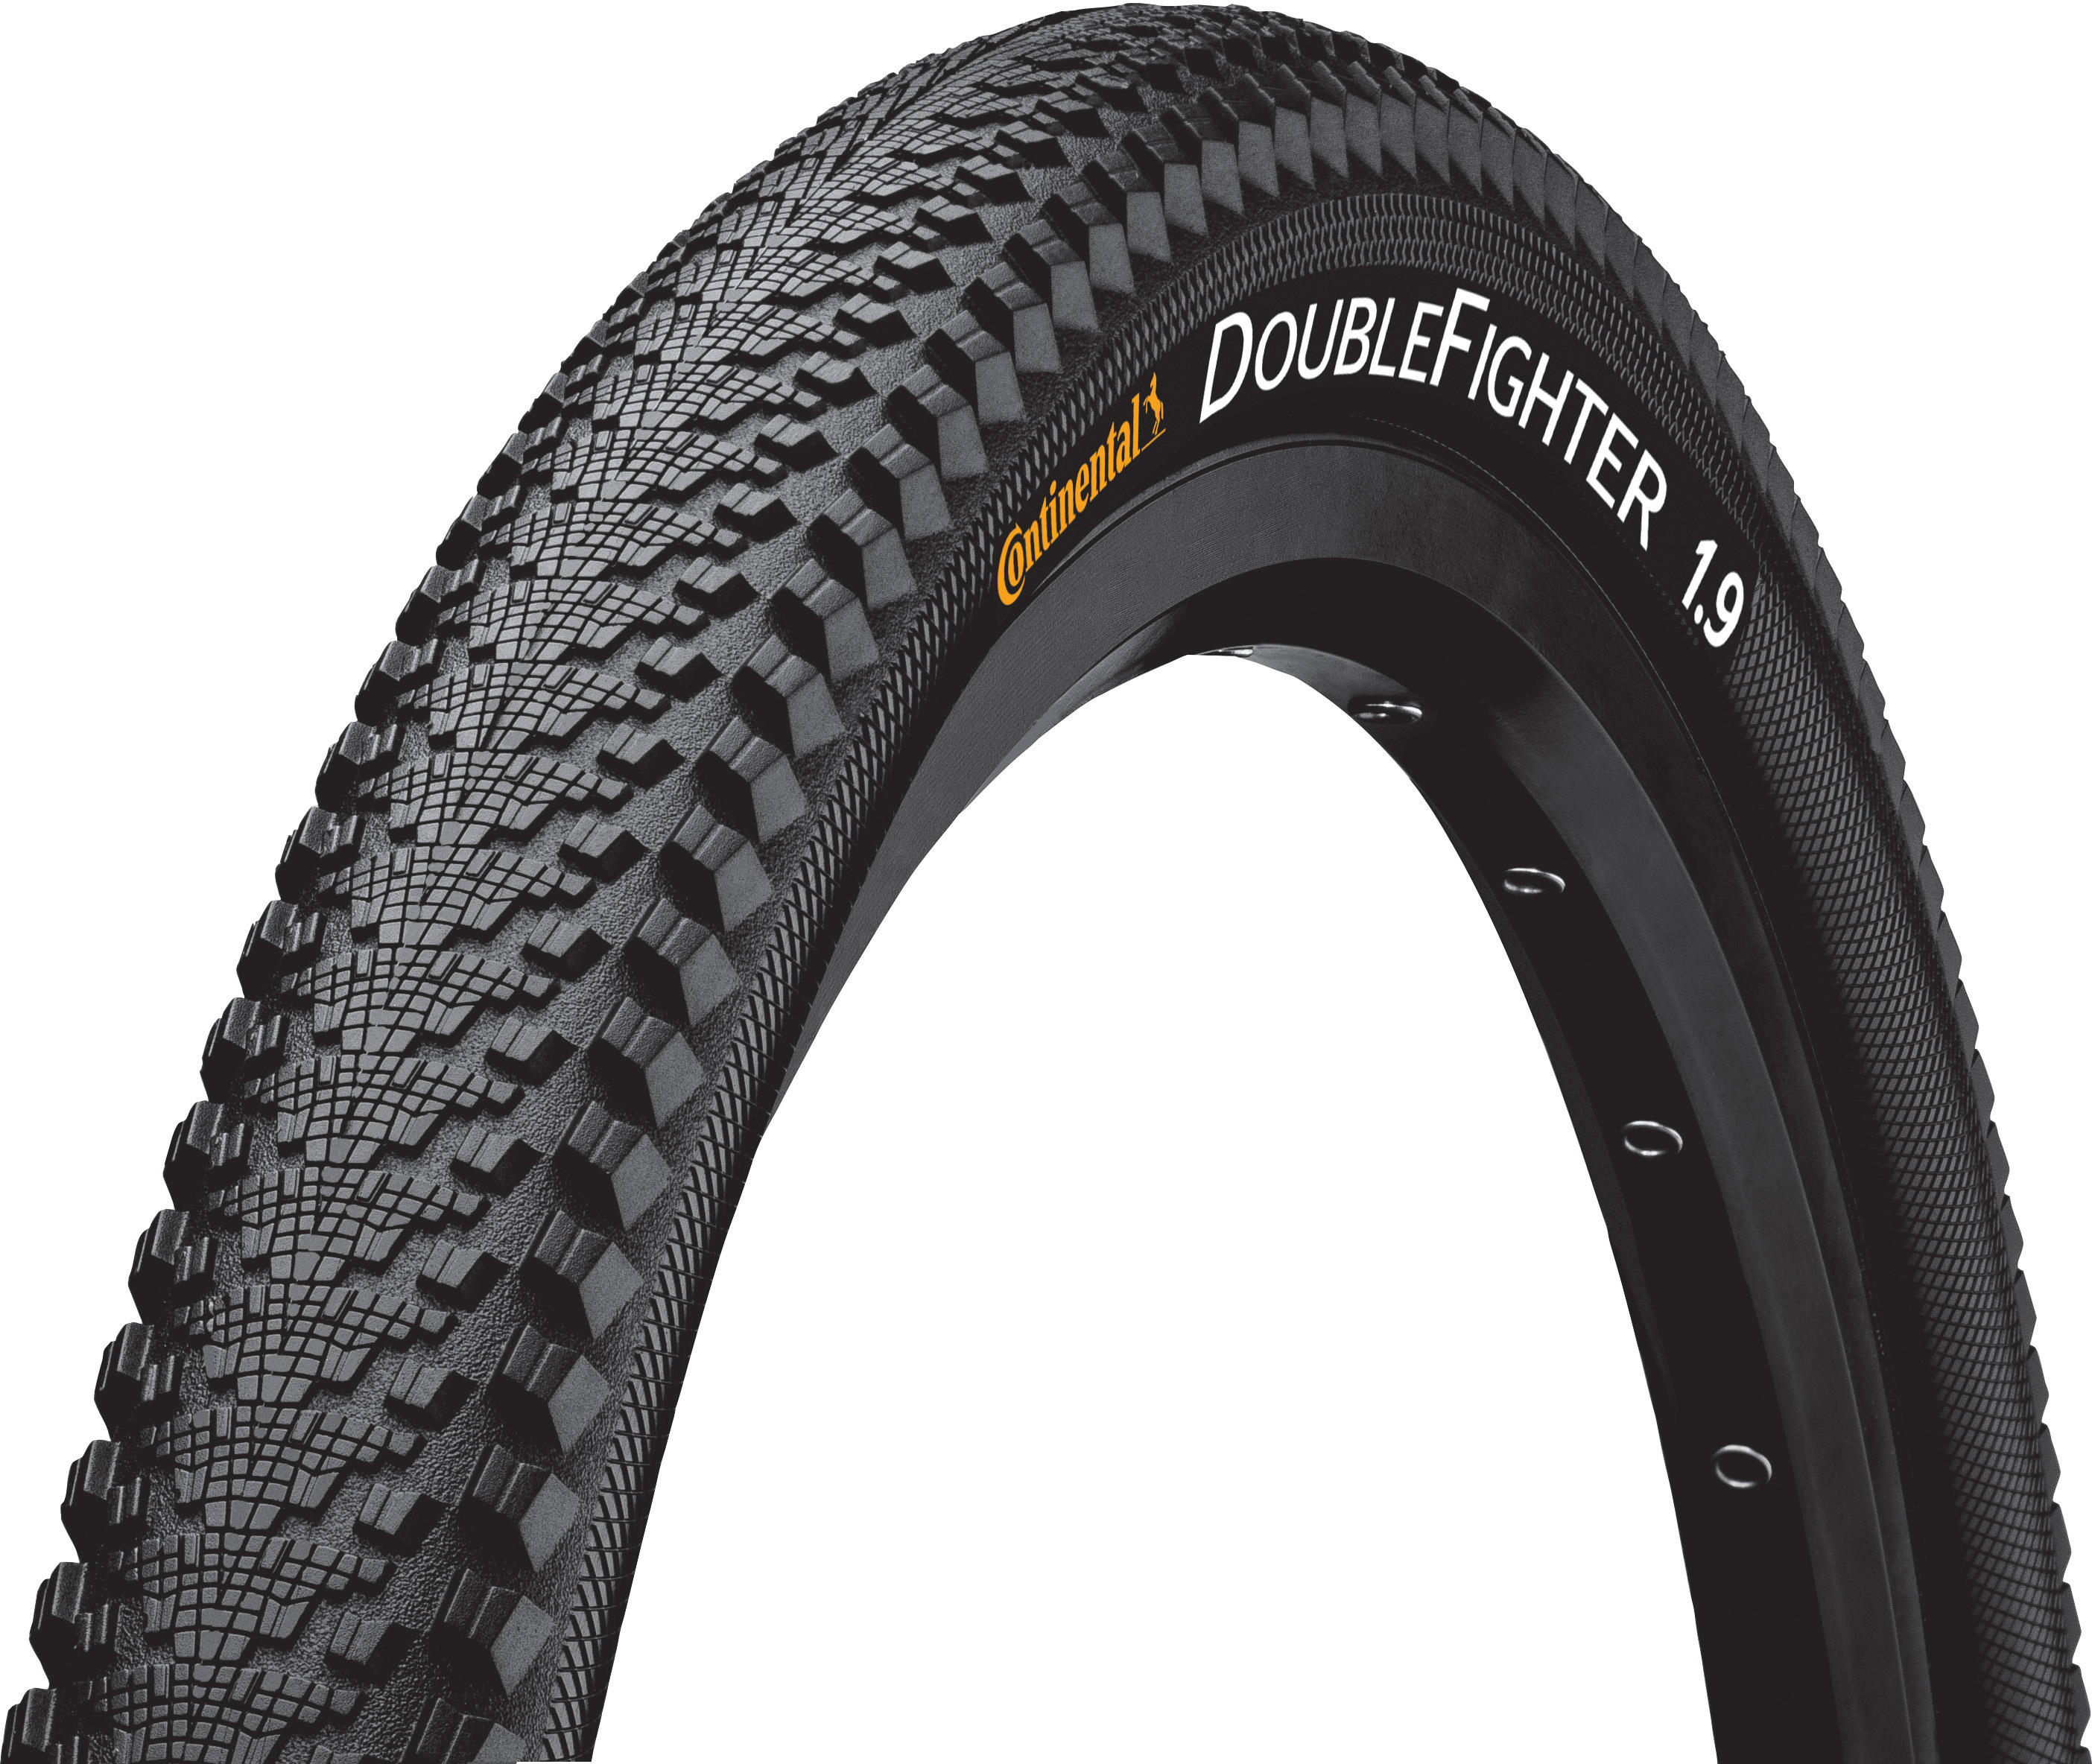 Continental Double Fighter III Touring Tyre | Tyres